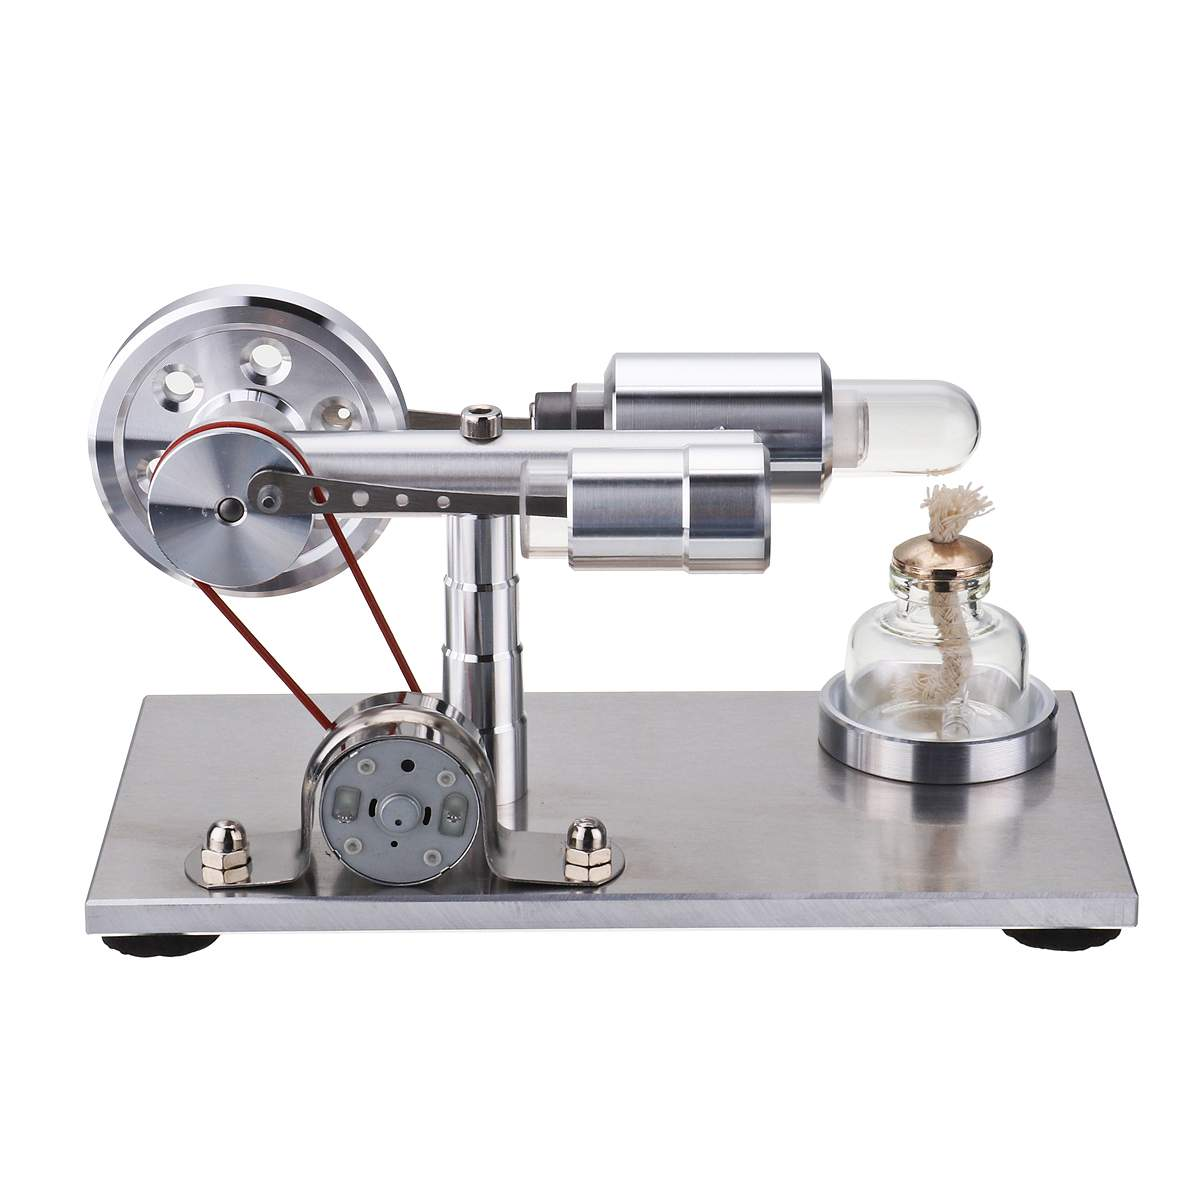 Hot Air Stirling Engine Model Generator STEAM DIY Physics Science Experiment Kit